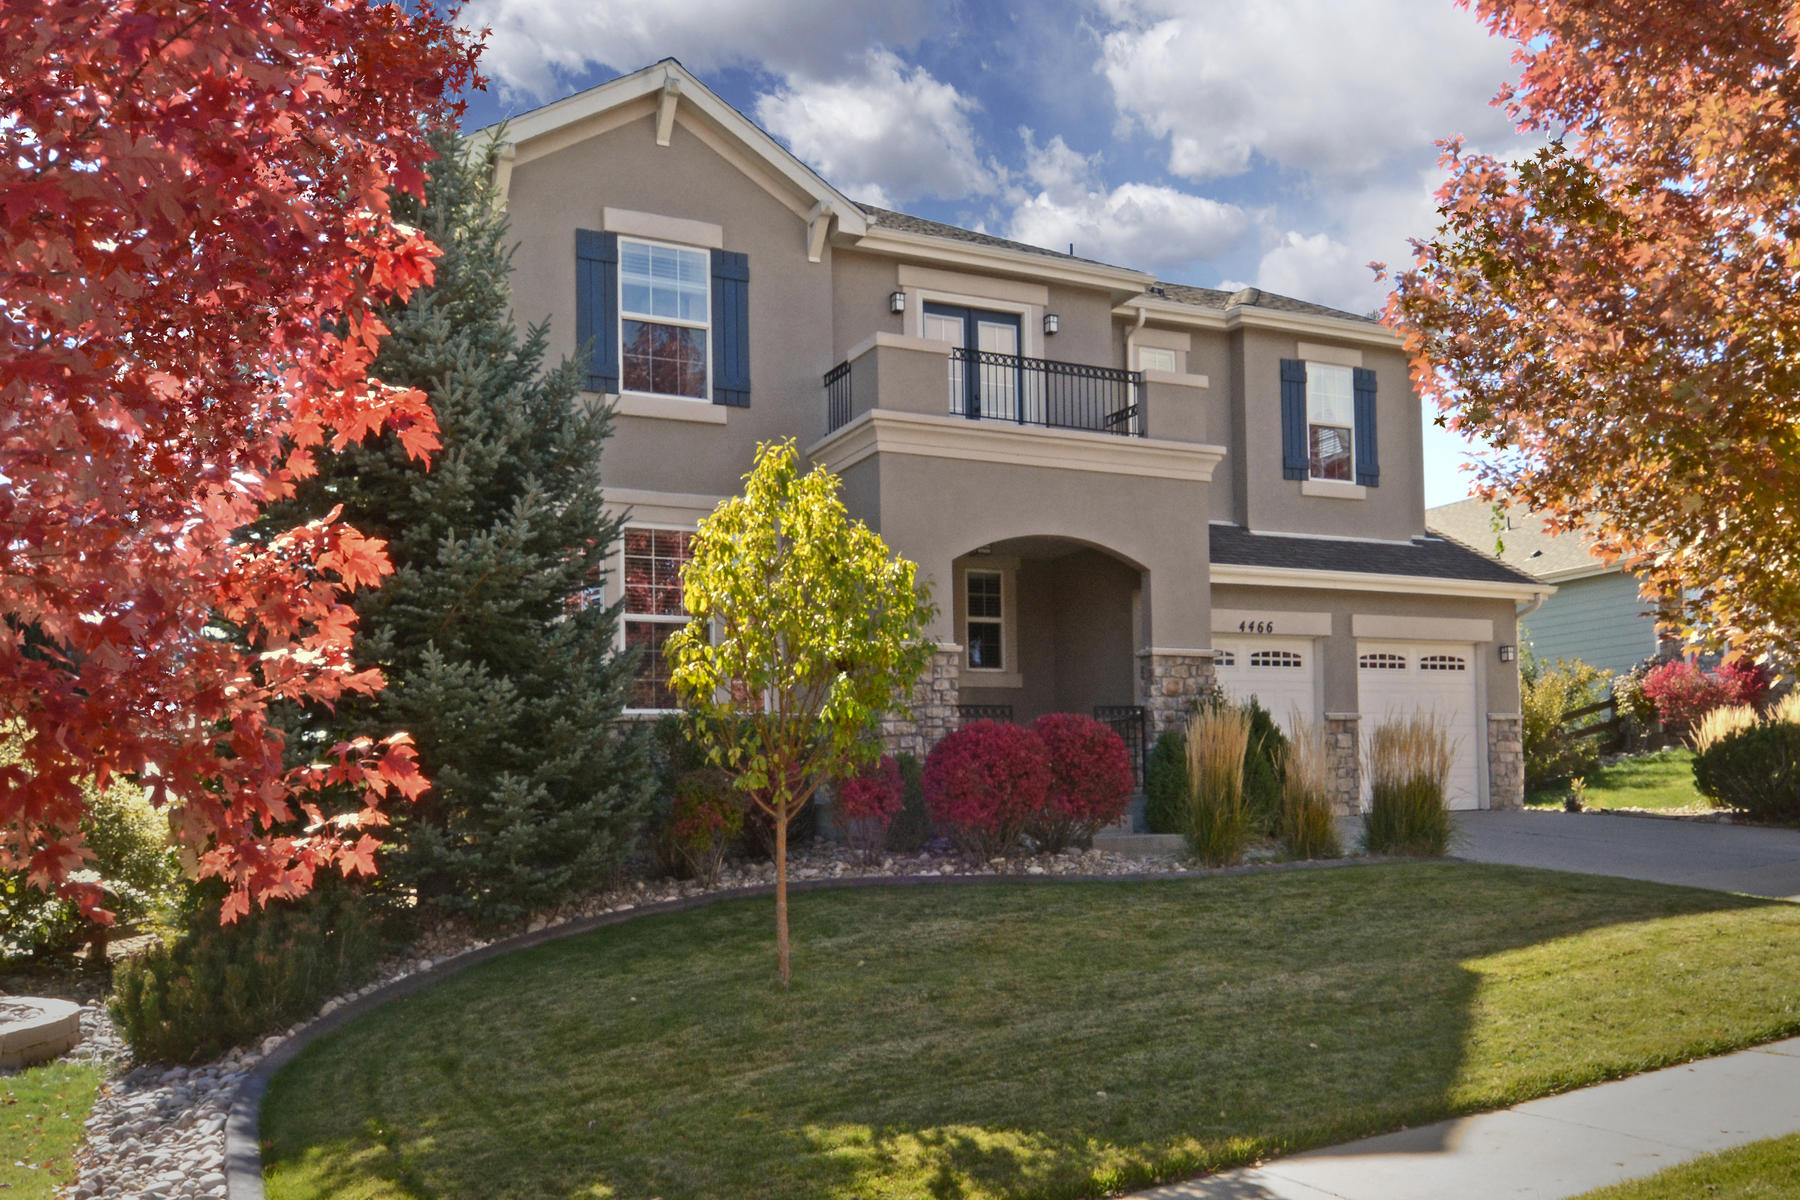 Single Family Home for Active at Chic Property with Desirable Open Floor Layout 4466 Eagle River Run Broomfield, Colorado 80023 United States